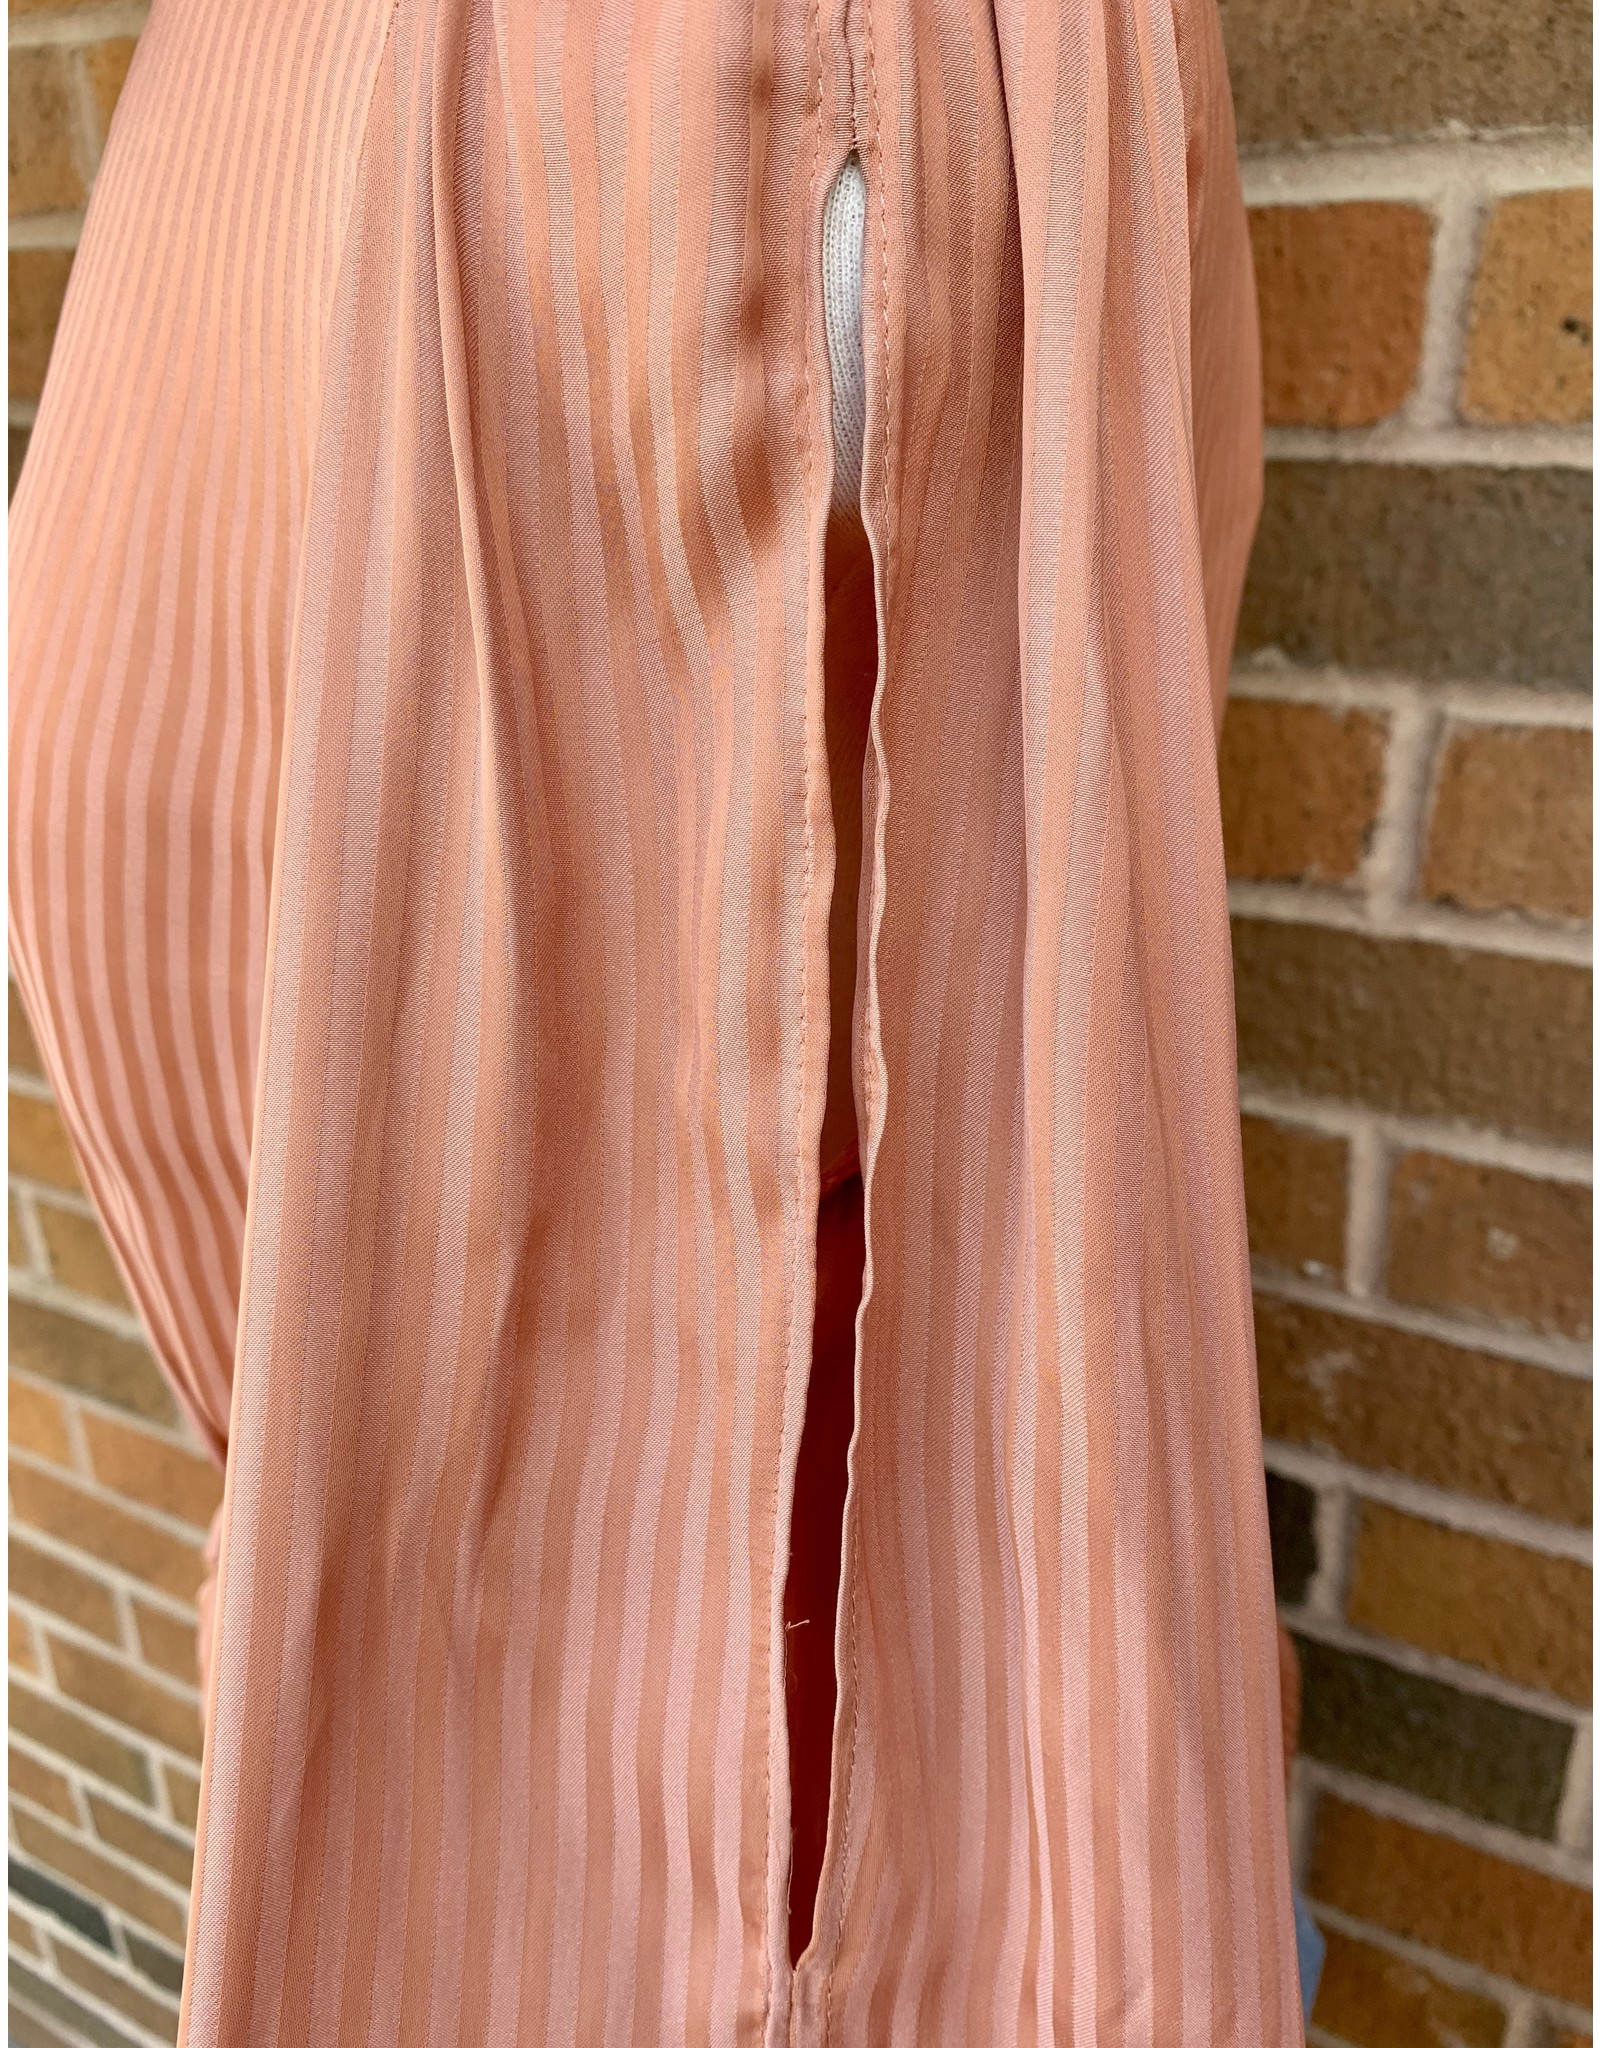 DIGGORY STRIPED TIE BLOUSE